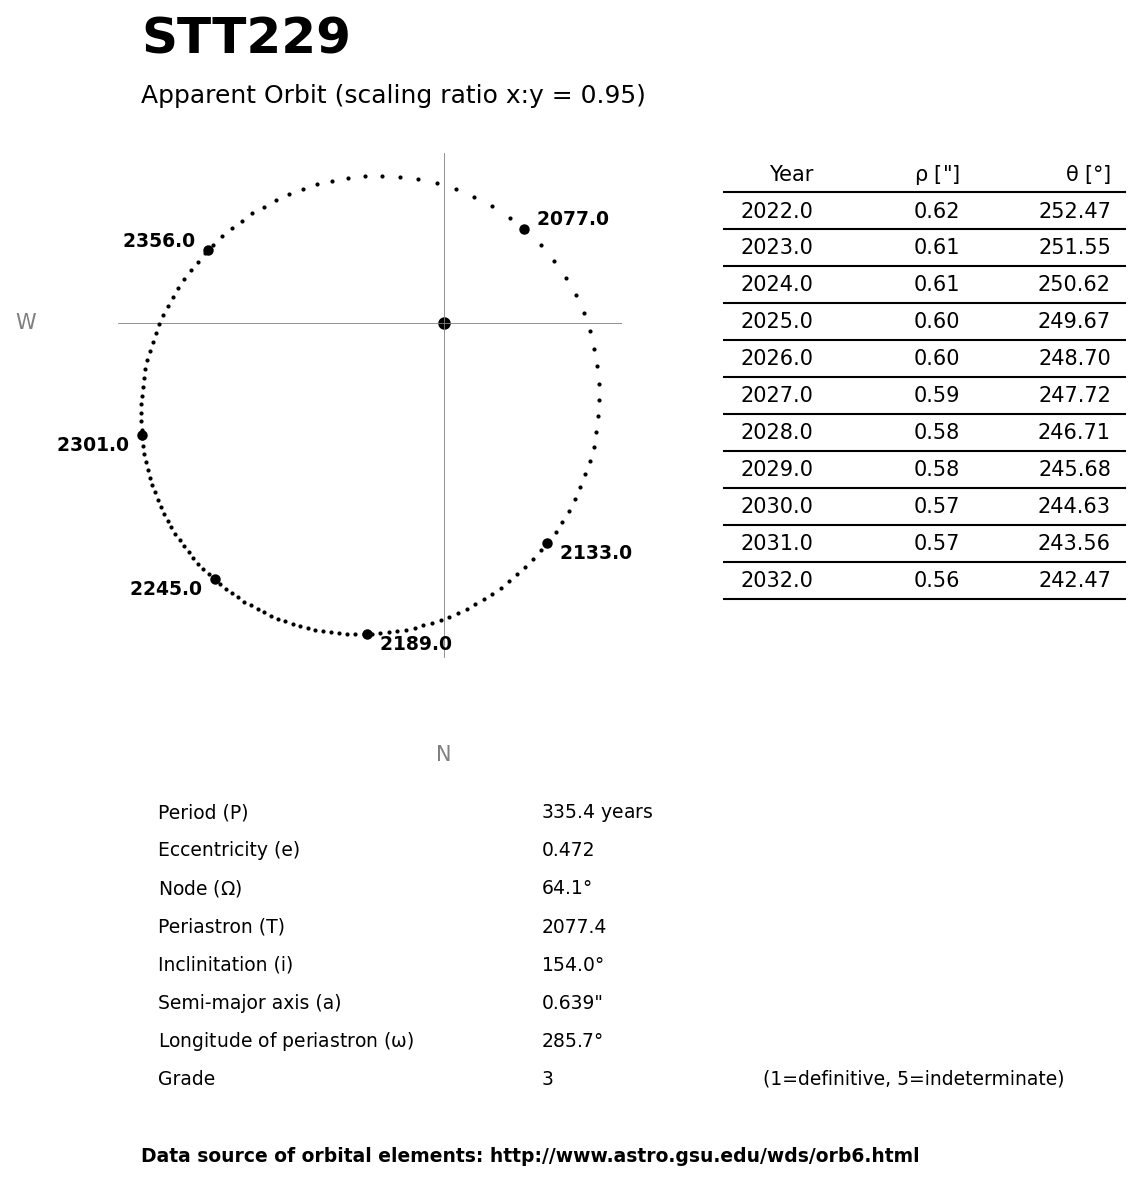 ../images/binary-star-orbits/STT229-orbit.jpg